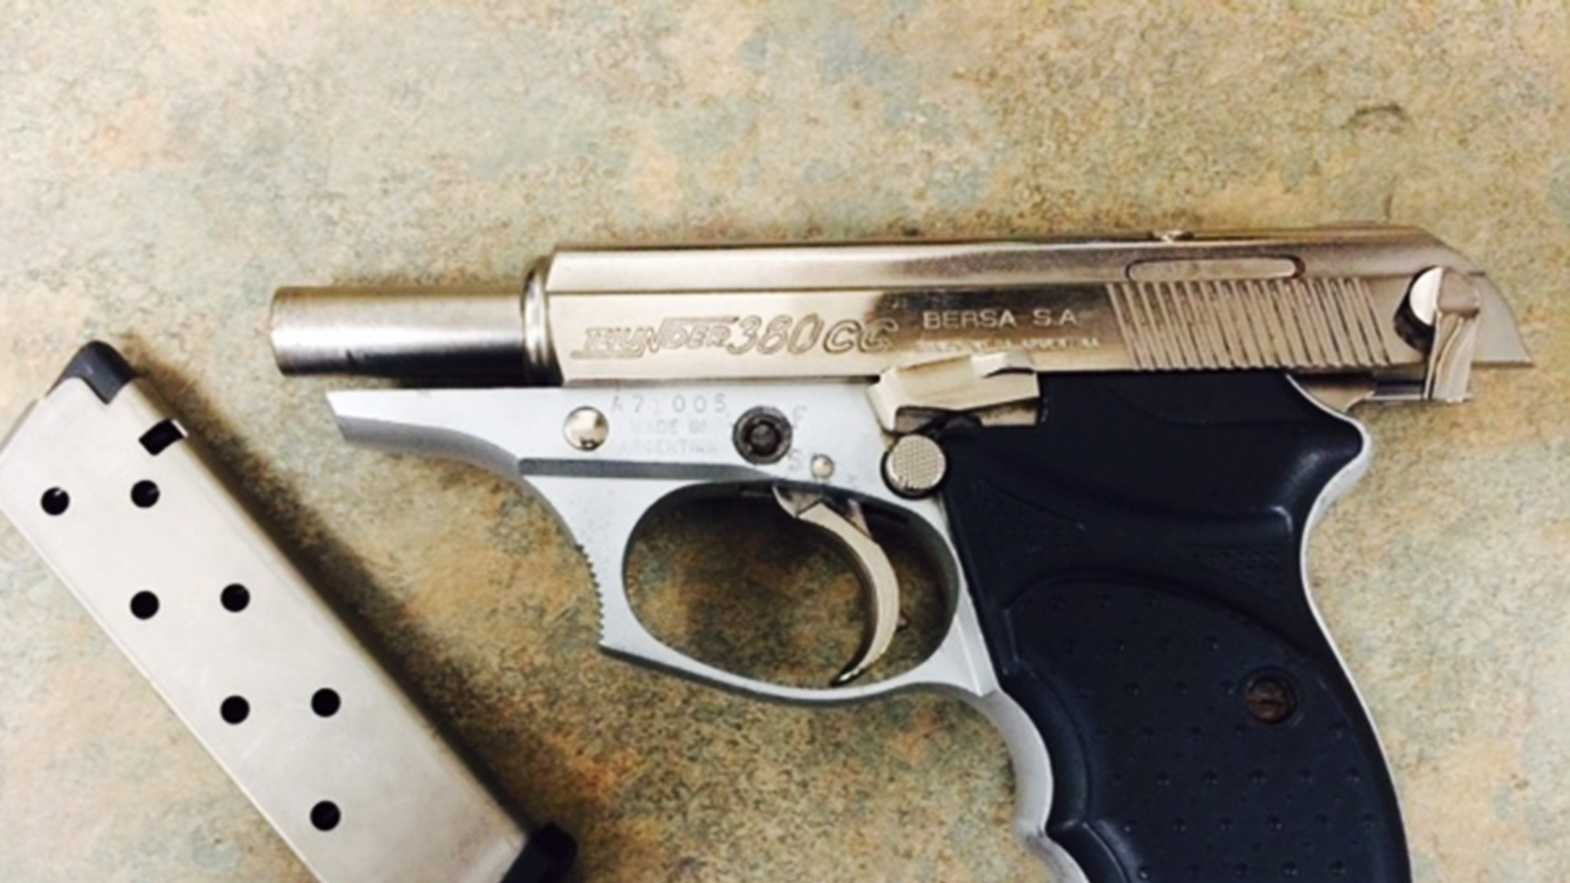 A student brought this loaded gun to Mission Hill Middle School in Santa Cruz.